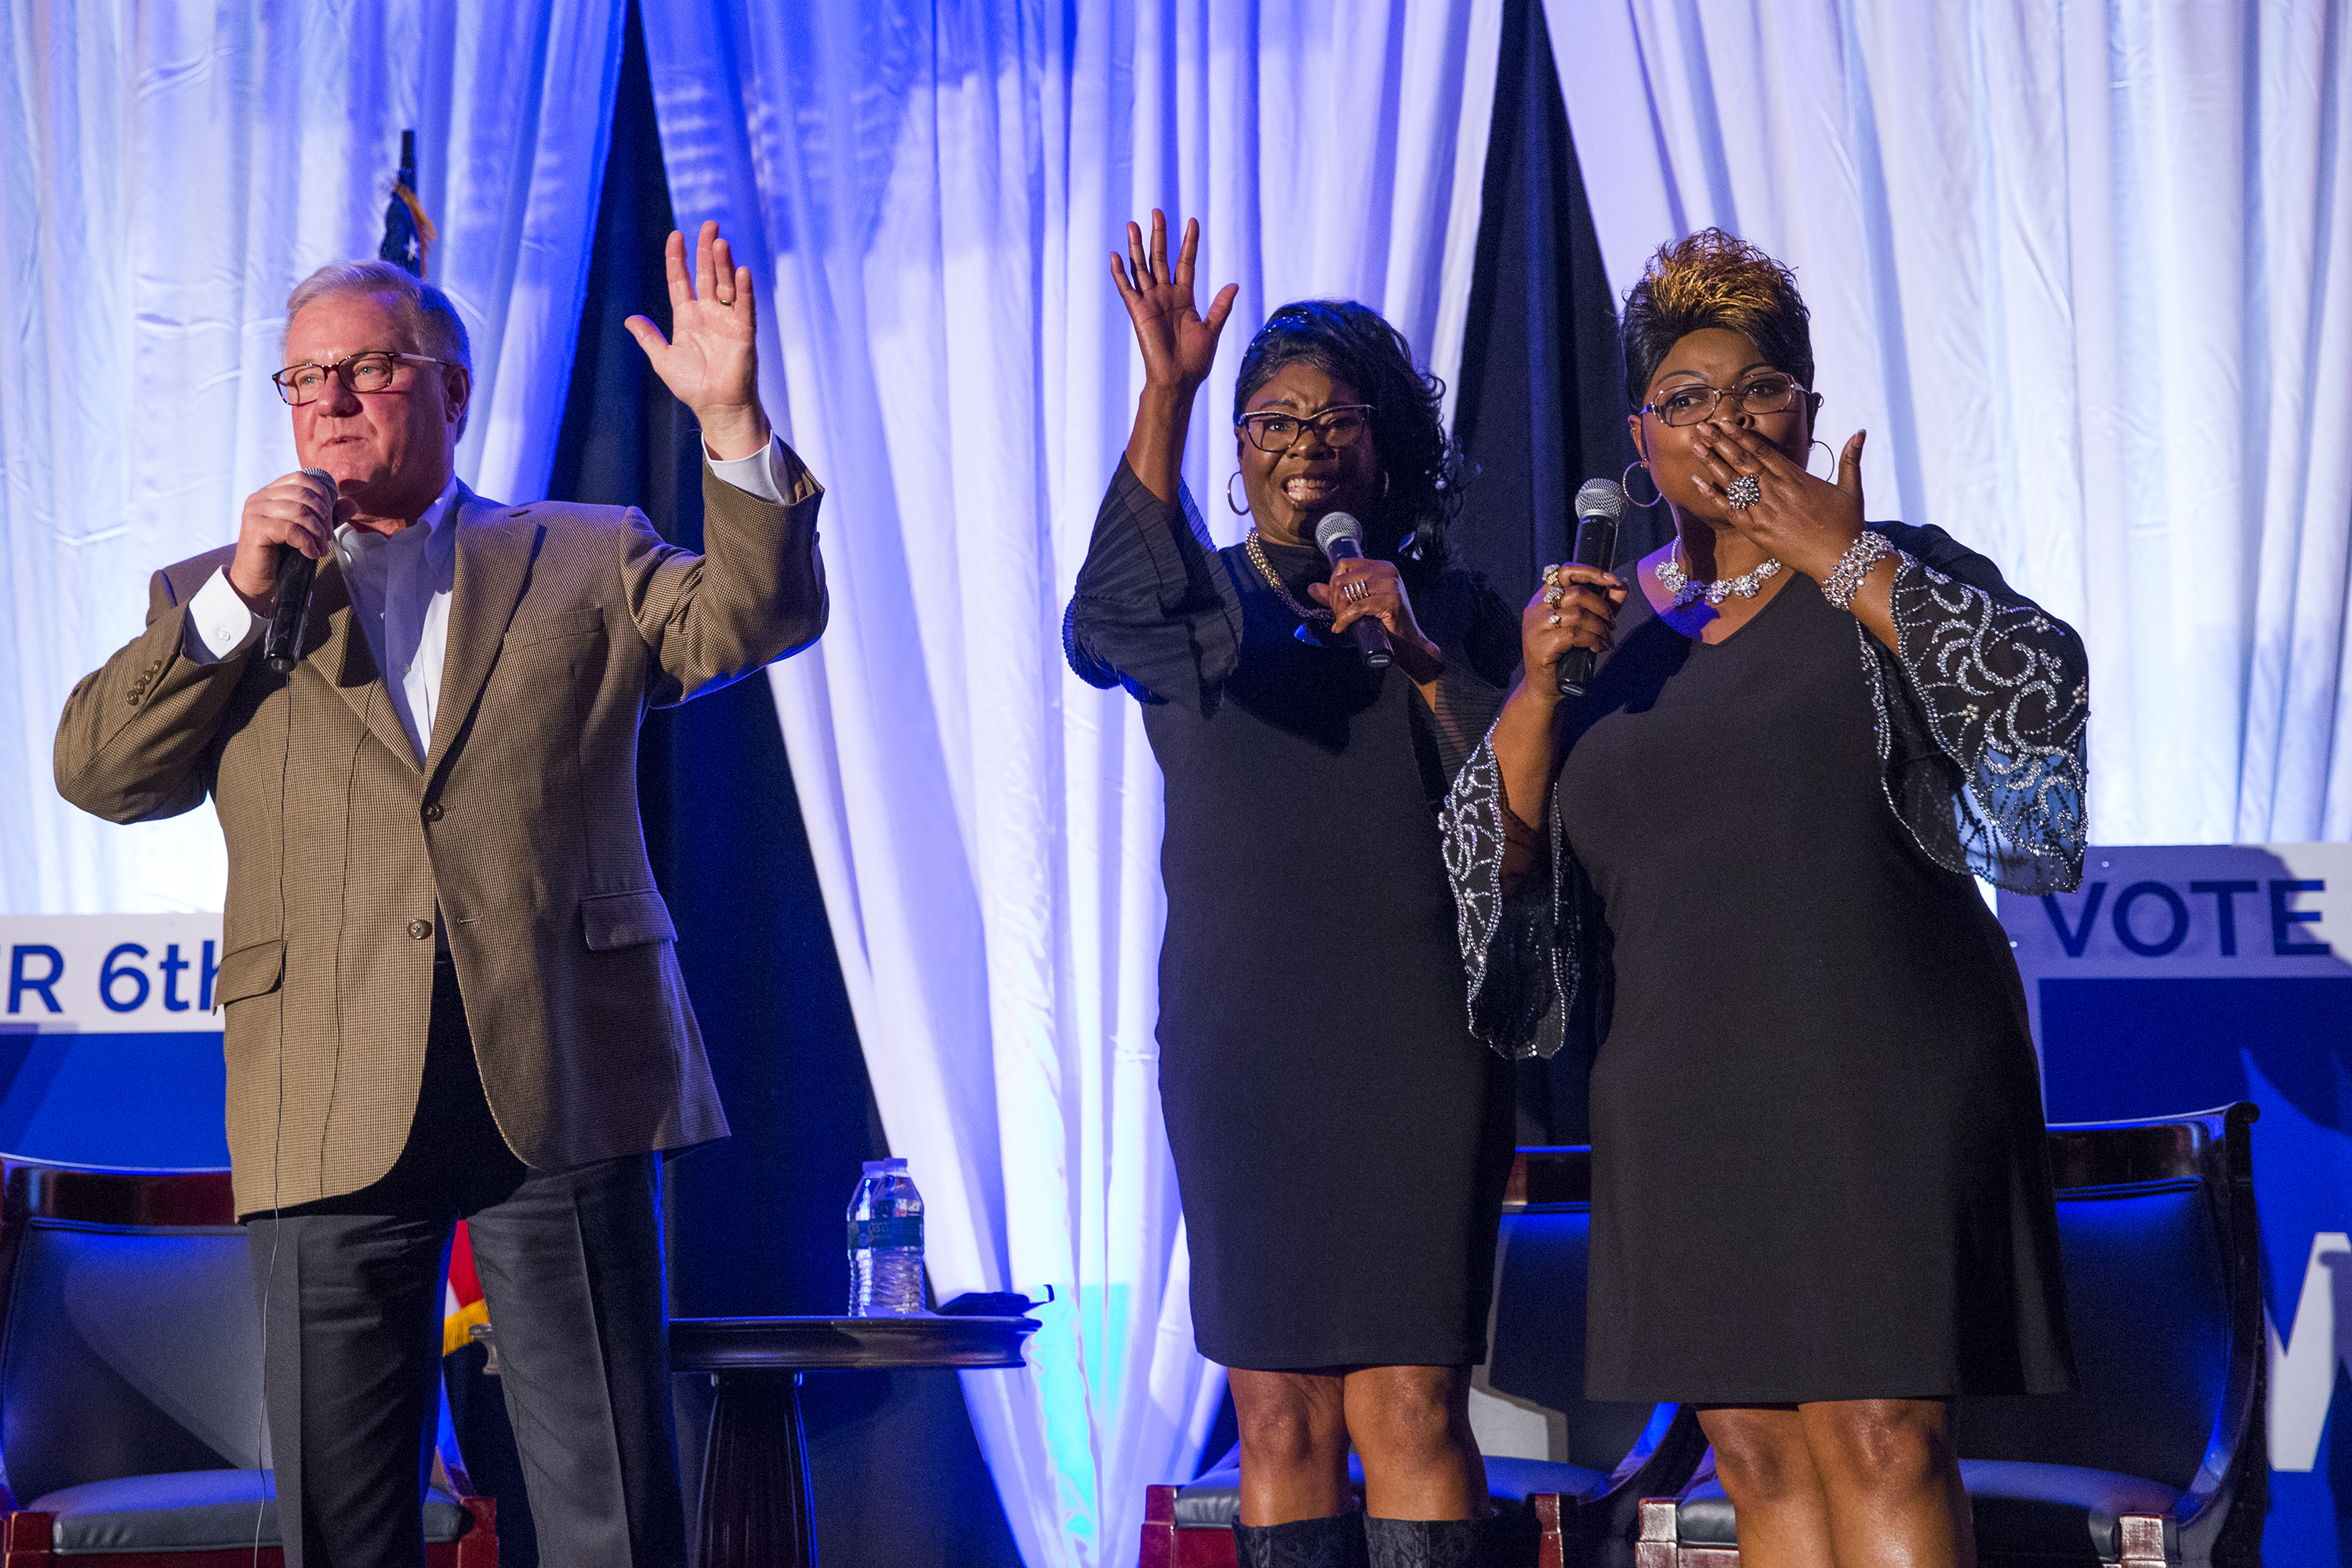 Republican gubernatorial nominee Scott Wagner, left, waves goodbye on stage during a Philadelphia campaign stop with the conservative icons known as Diamond (Lynnette Hardaway), center, and Silk (Rochelle Richardson) on Oct. 26, 2018.